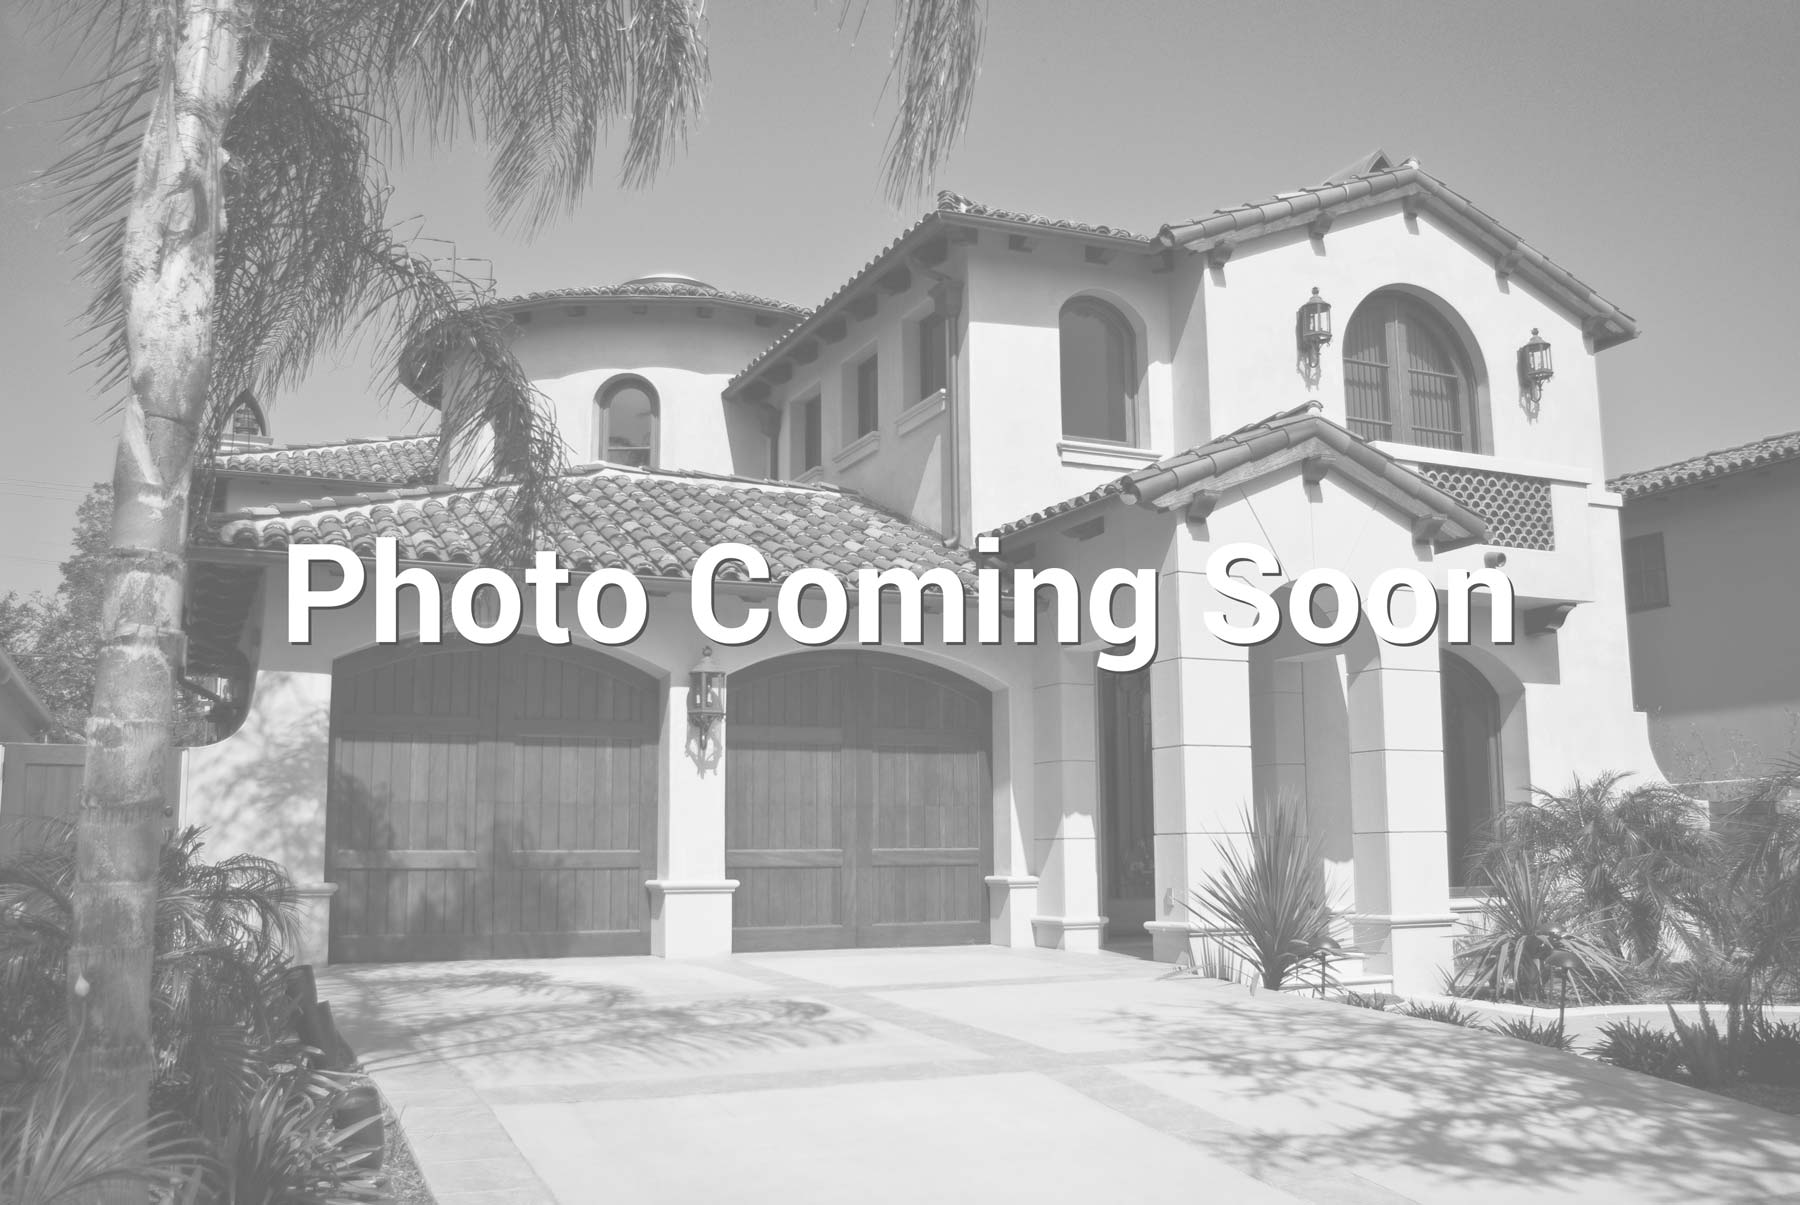 $360,000 - 3Br/3Ba - Home for Sale in Surprise Farms Phase 3 Parcel 6, Surprise